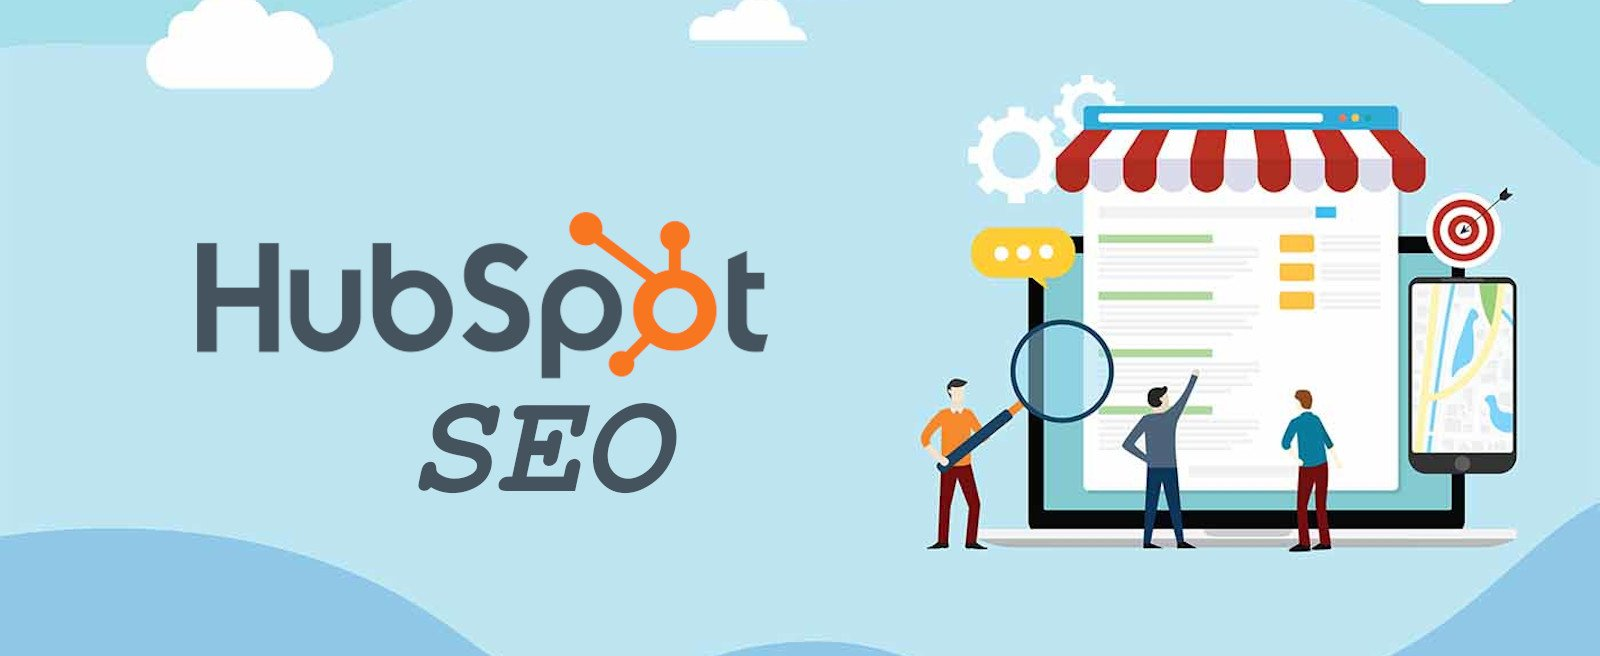 Improve and analyse your content with HubSpot SEO tools. 4